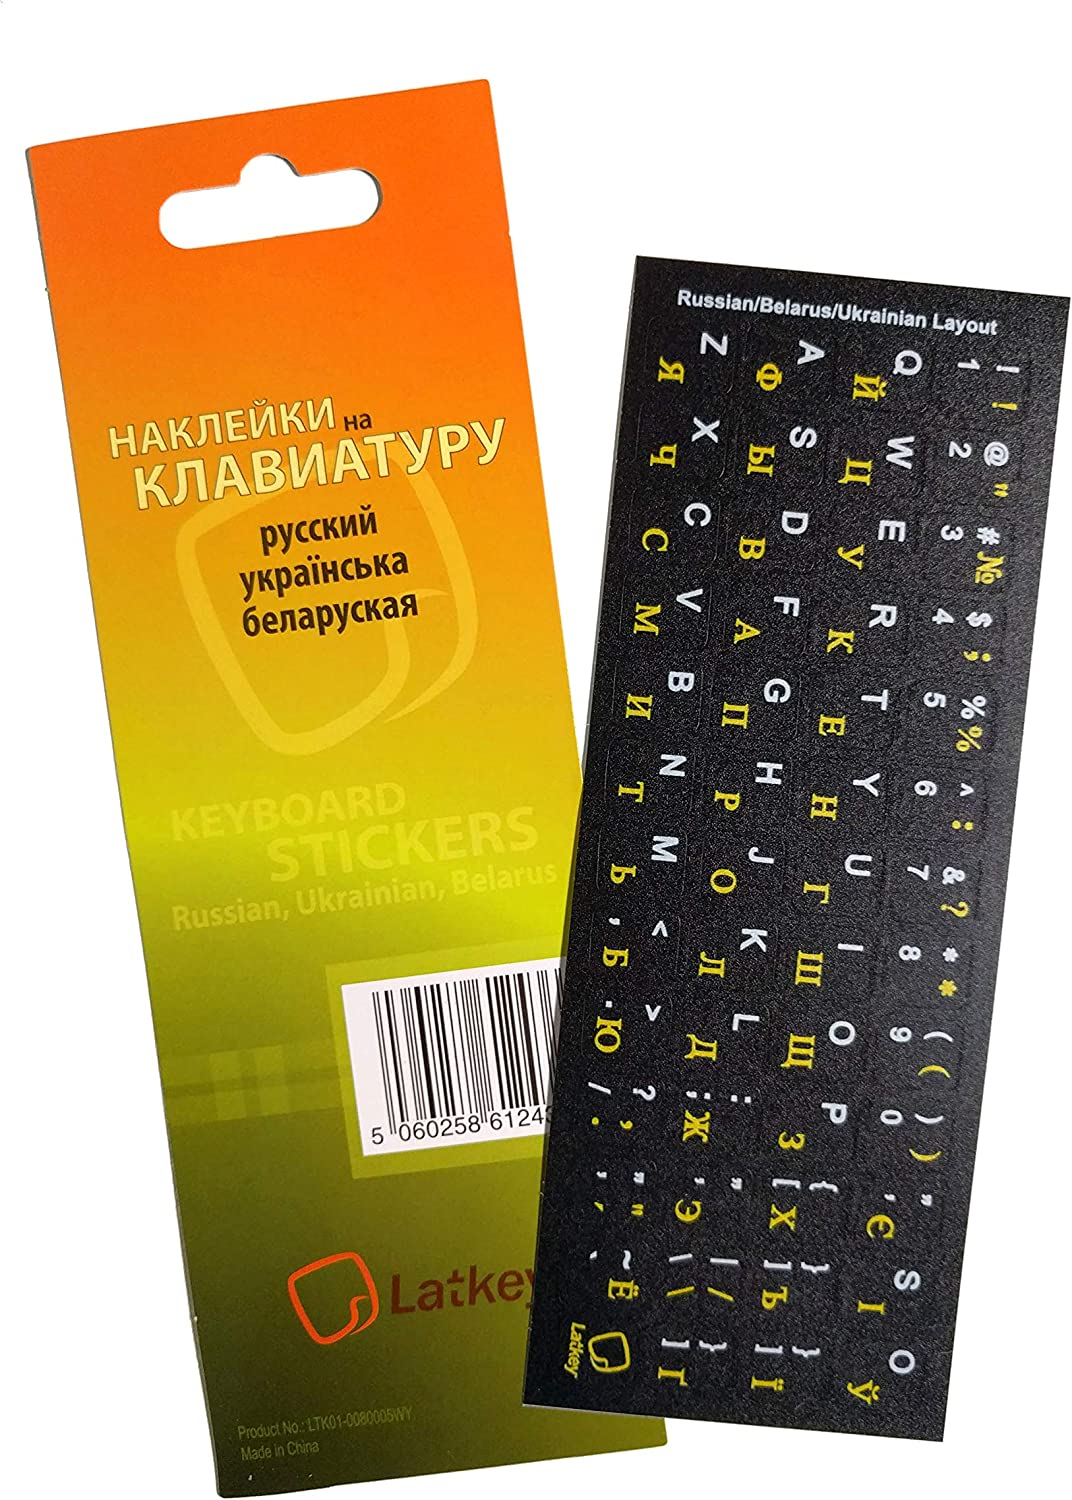 Russian Keyboard Sticker for PC, Laptop, Computer Keyboards, iMac (Labels on Black Background, Yellow/White Letters)